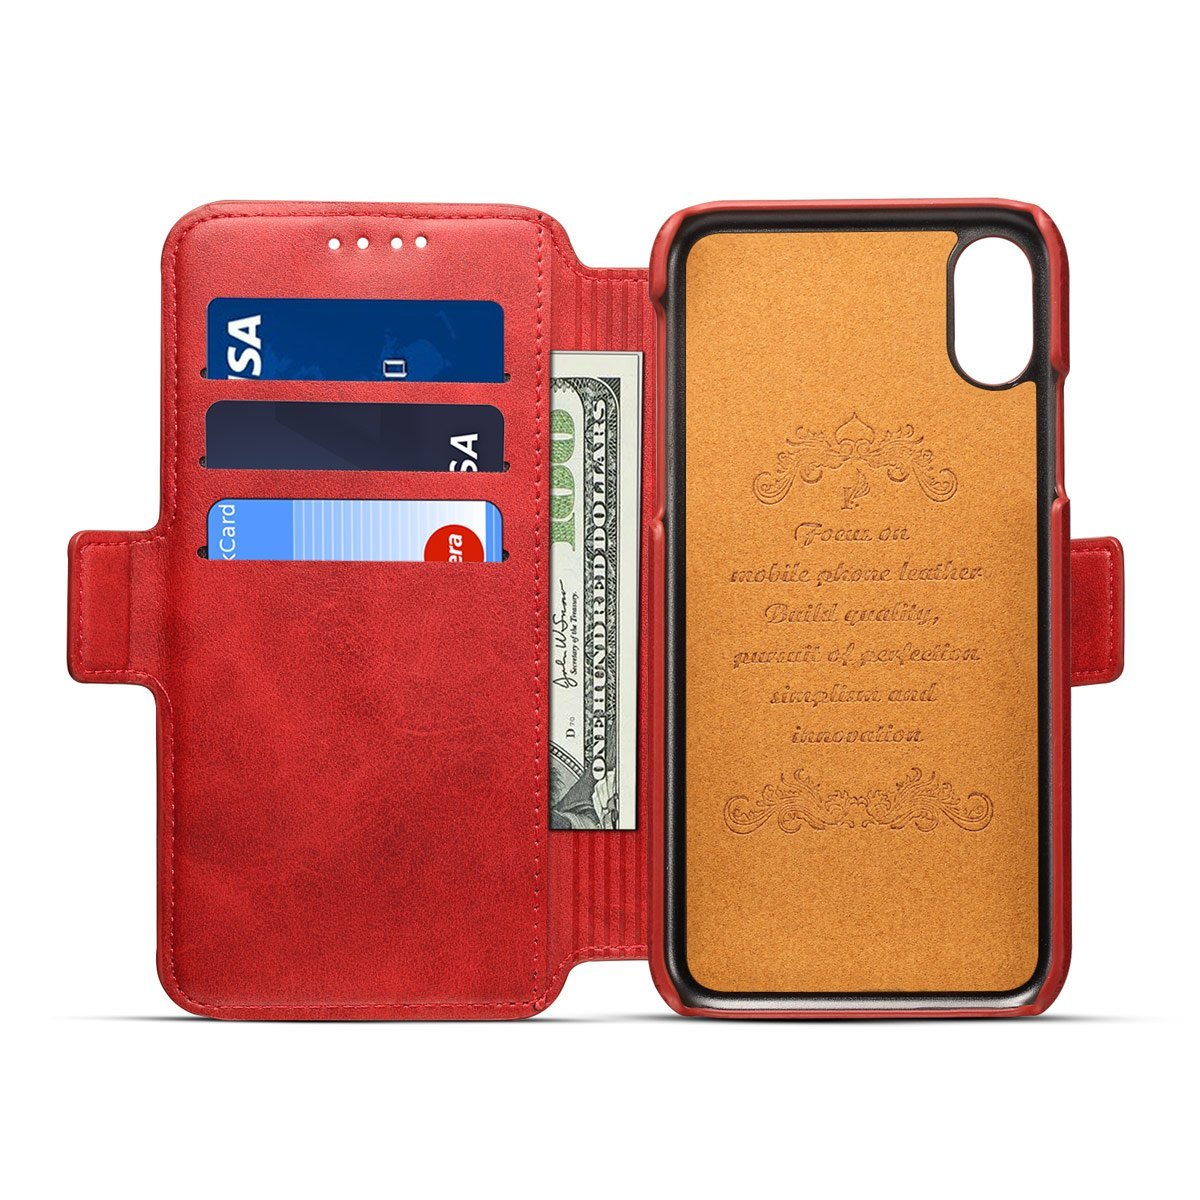 Scheam iPhone X Flip Cover, Case, Skins Card Slot [Stand Feature] Leather Wallet Case Vintage Book Style Magnetic Protective Cover Holder for iPhone X - Red by Scheam (Image #5)